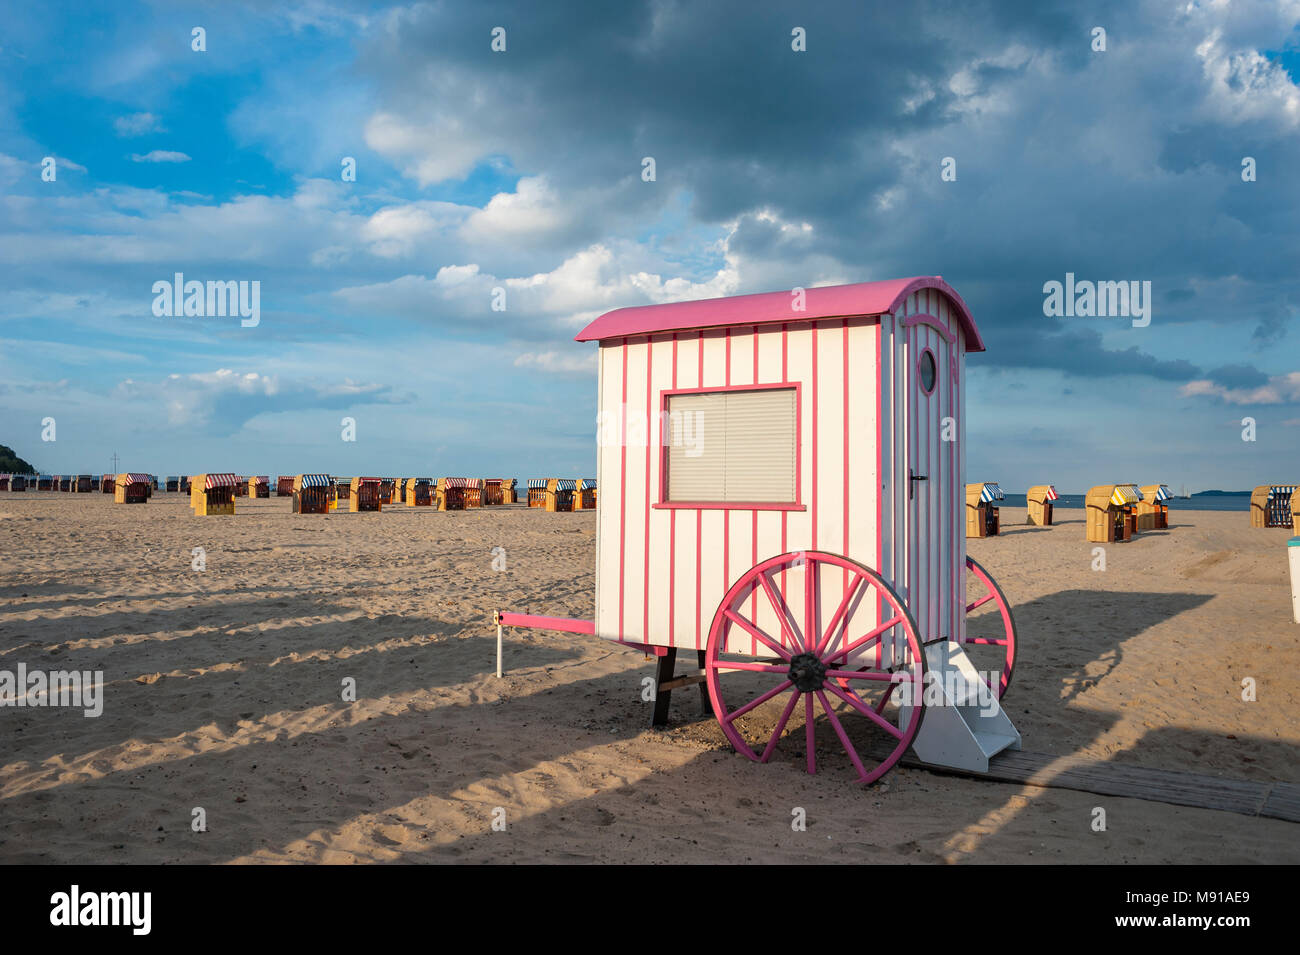 Historic bathing barrow also historic changing cubicle at the beach, Travemuende, Baltic Sea, Schleswig-Holstein, Germany, Europe - Stock Image